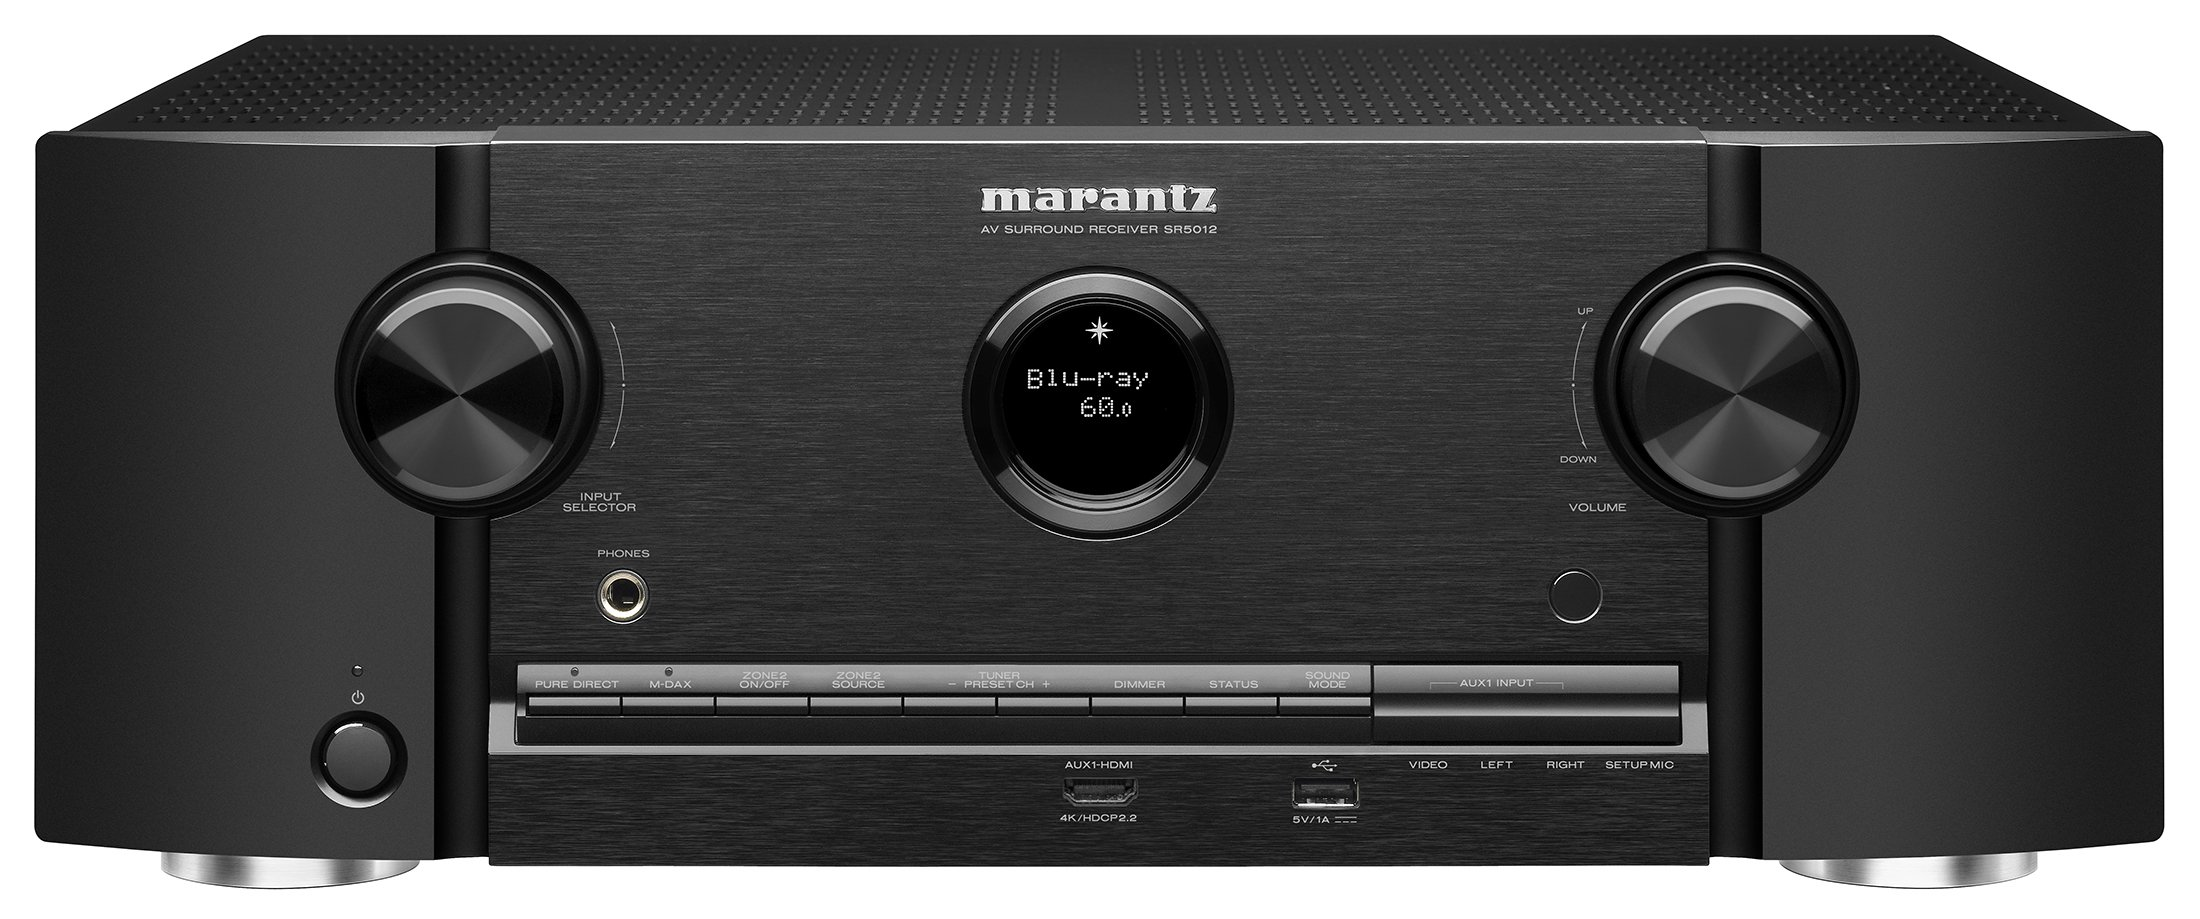 Marantz SR5012 7.2 Channel Full 4K Ultra HD Network AV Surround Receiver with HEOS Black, Works with Alexa (Discontinued by Manufacturer)